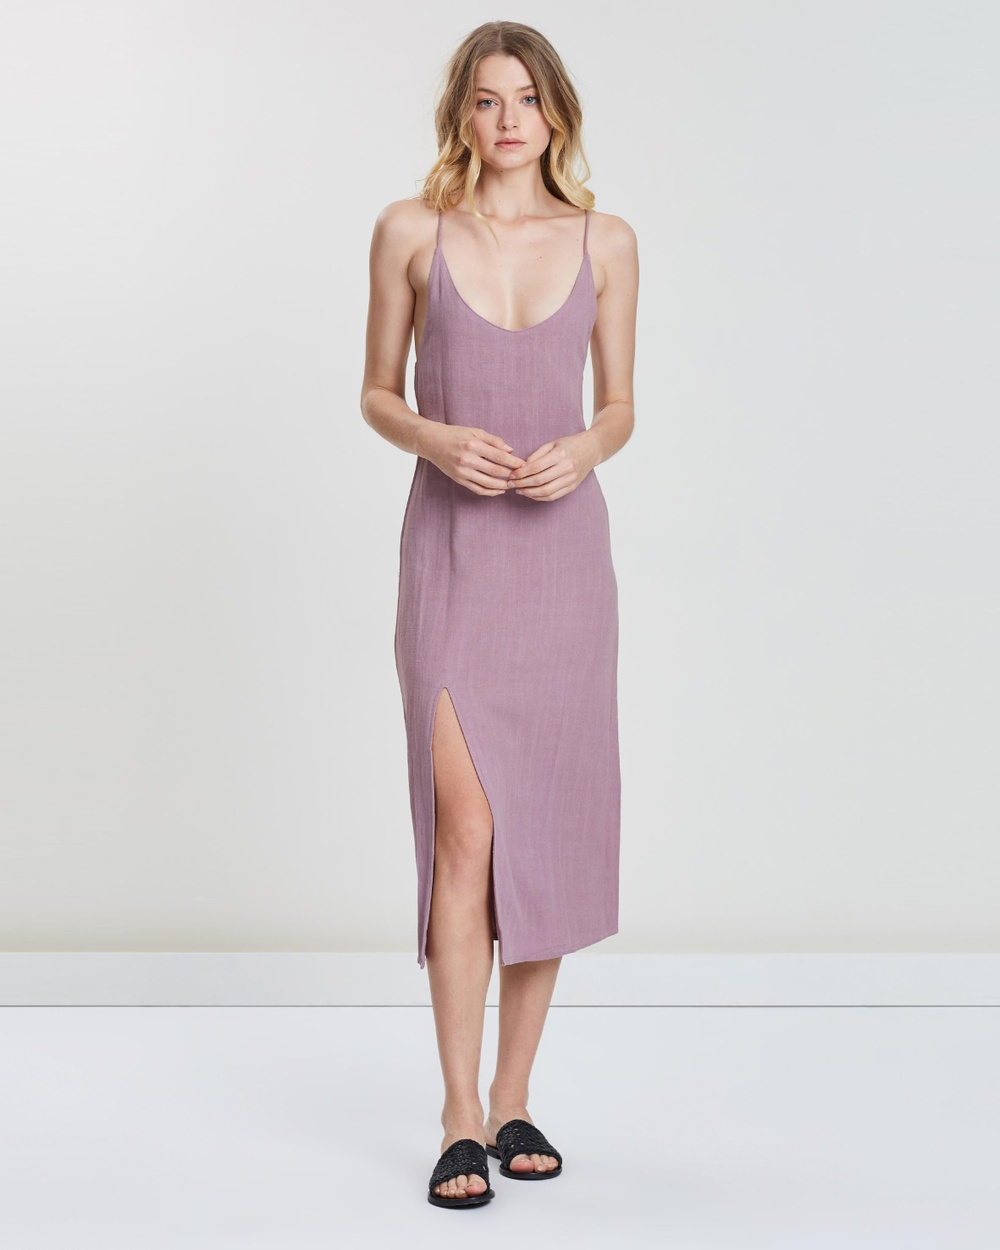 The Bare Road Lavender Nice Dress